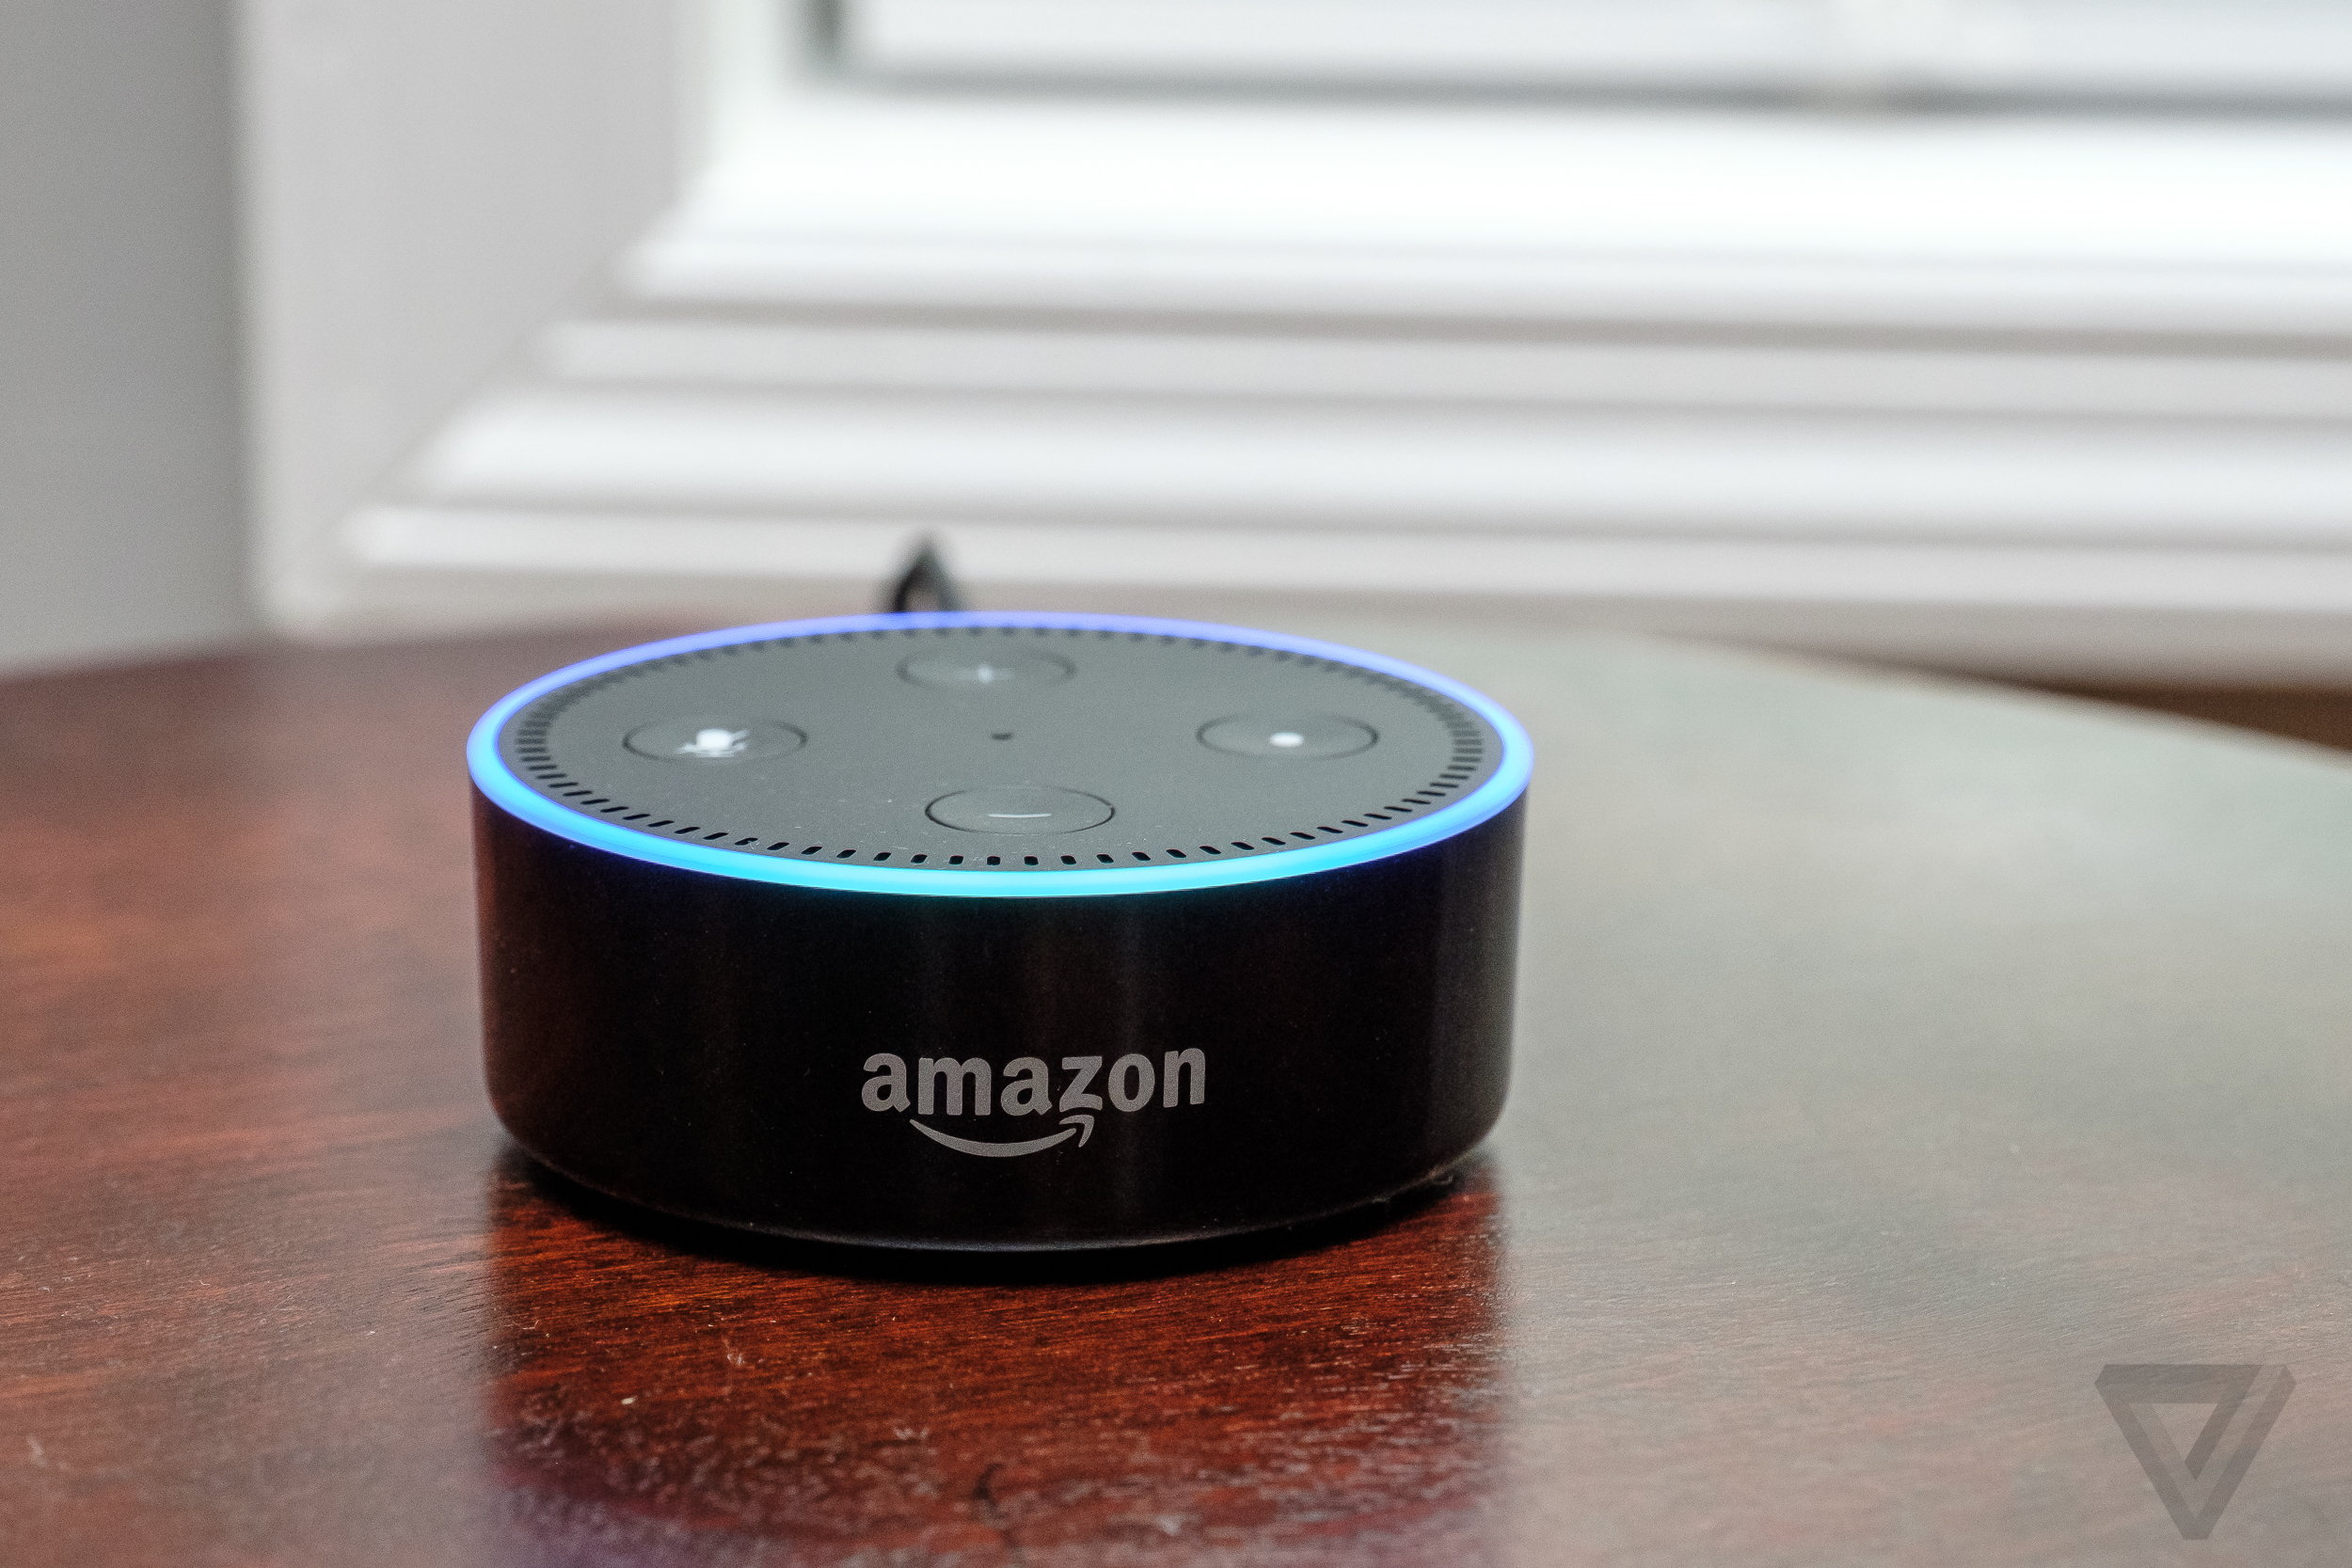 Amazon gives up fight for Alexa's First Amendment rights after defendant hands over data